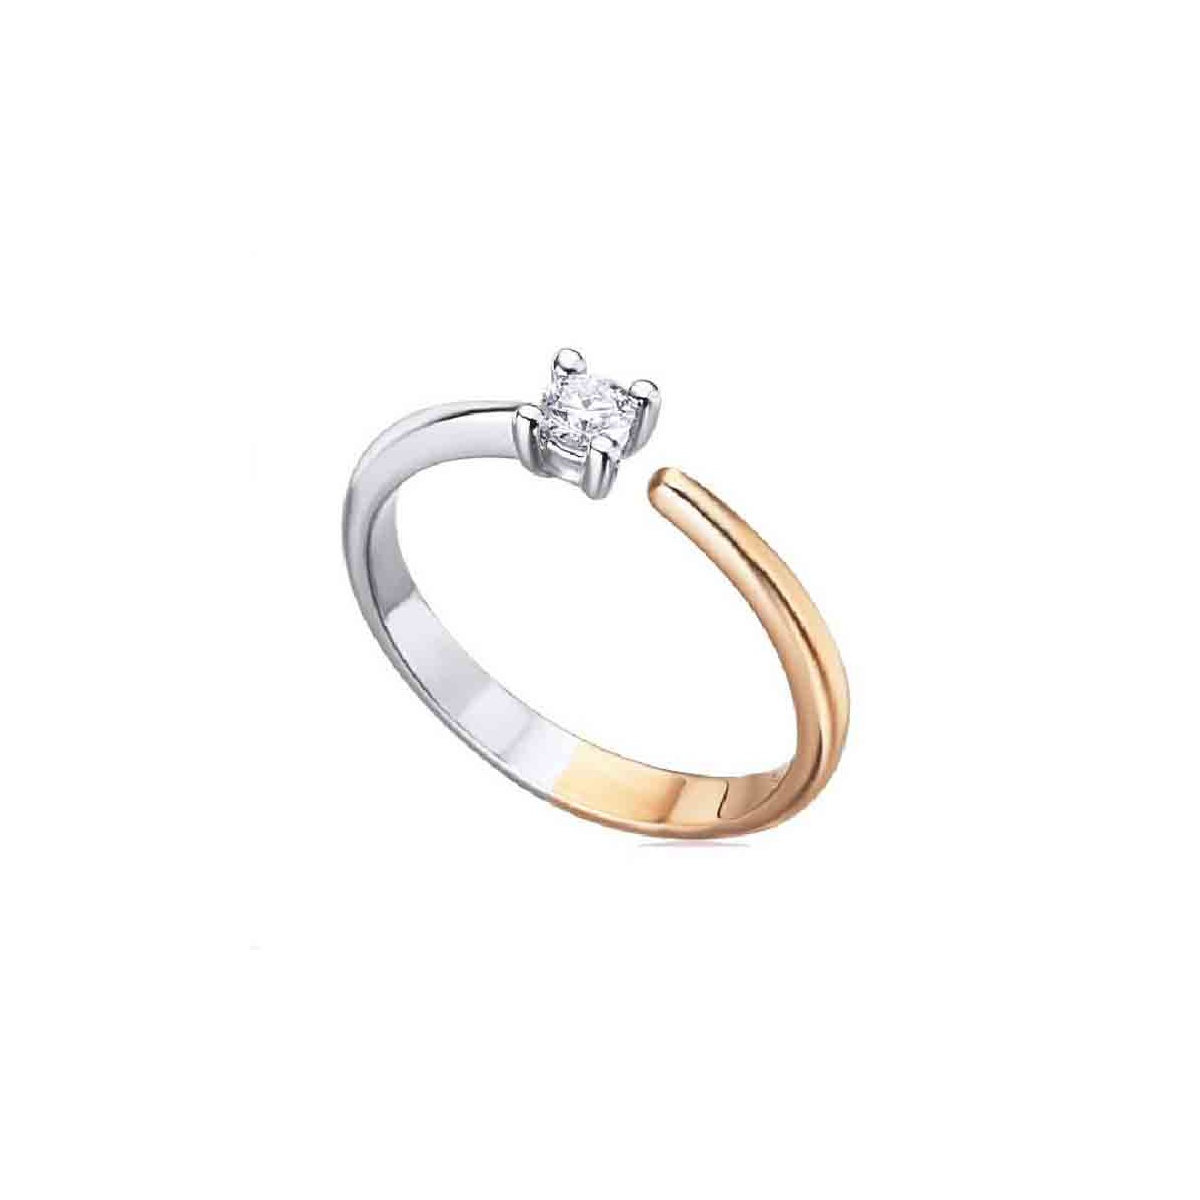 Anillo oro blanco, rosa y Diamantes - 0,12 quilates